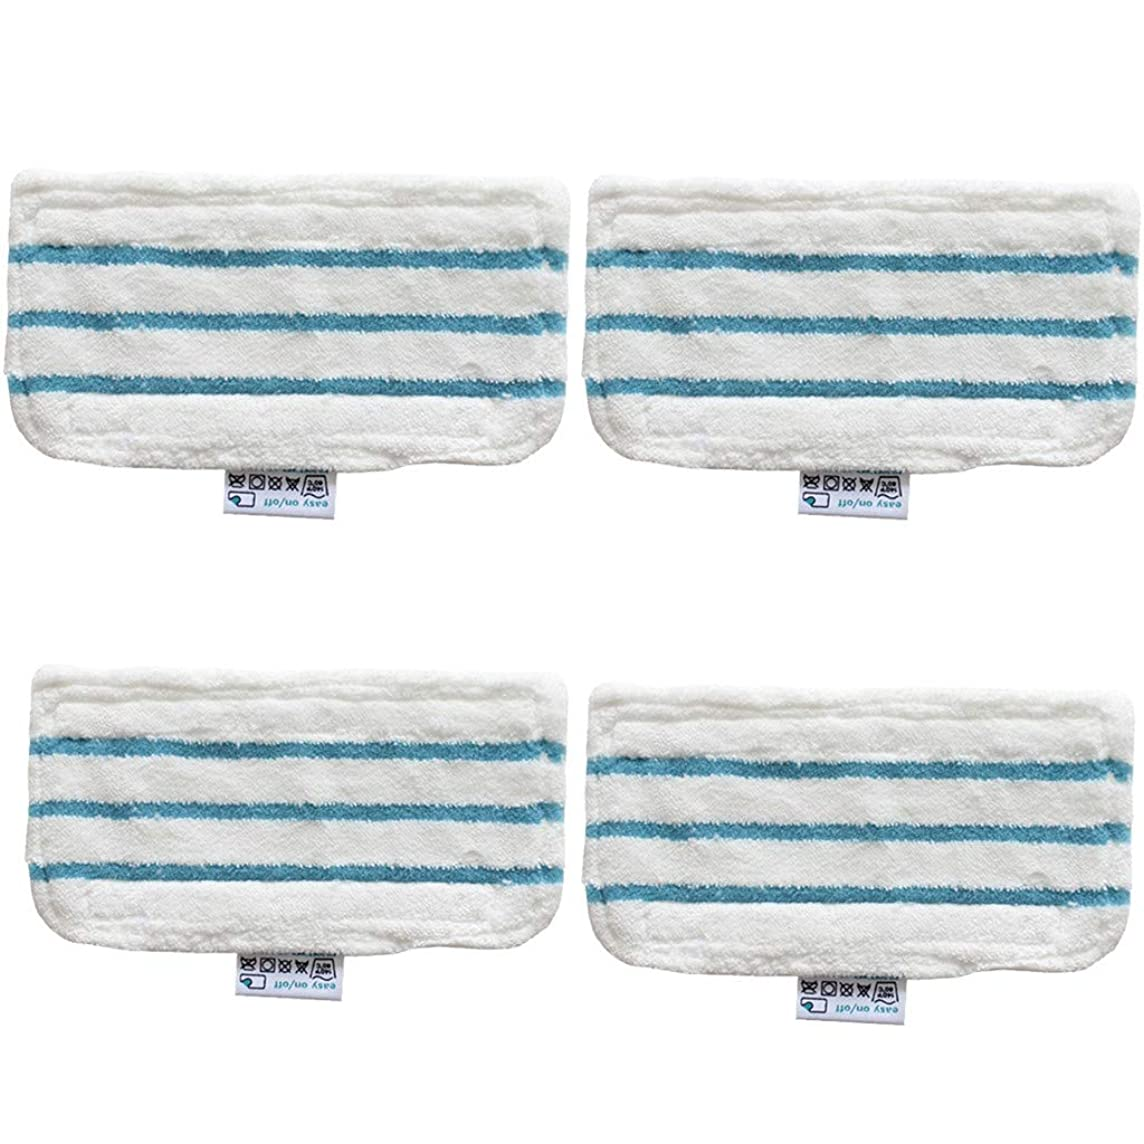 Aobiny Mop Cloth,4 Washable Replacement Cleaner Steam Mop Pads for Black and Decker FSM1610